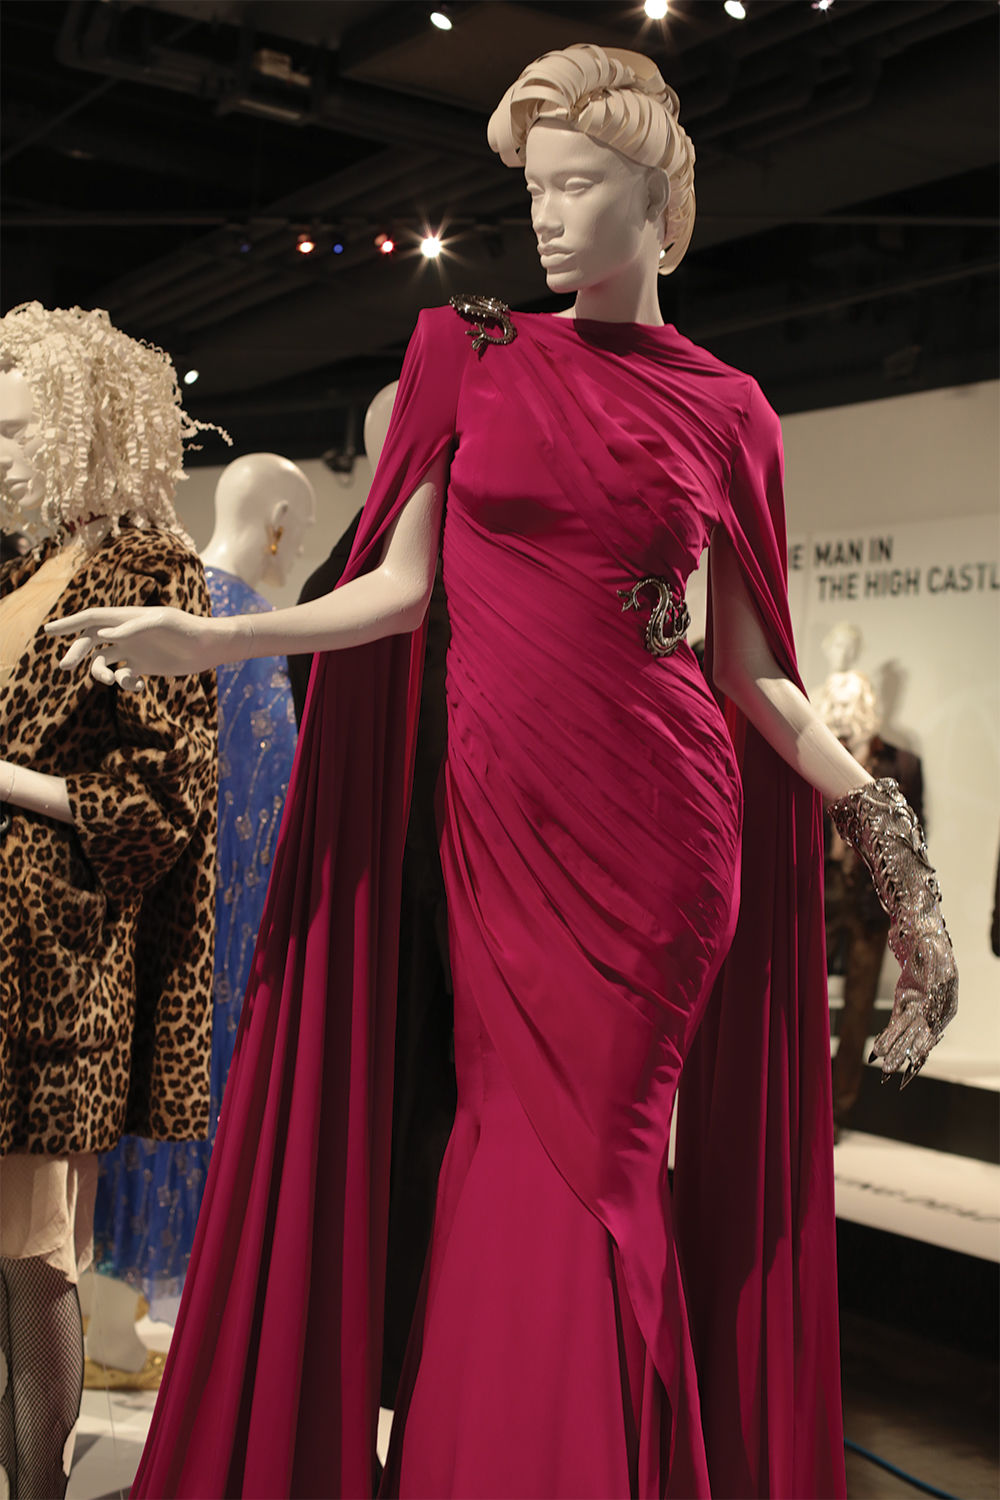 At Fidm Tv Costumes Come Alive Arts And Culture Ladowntownnews Com